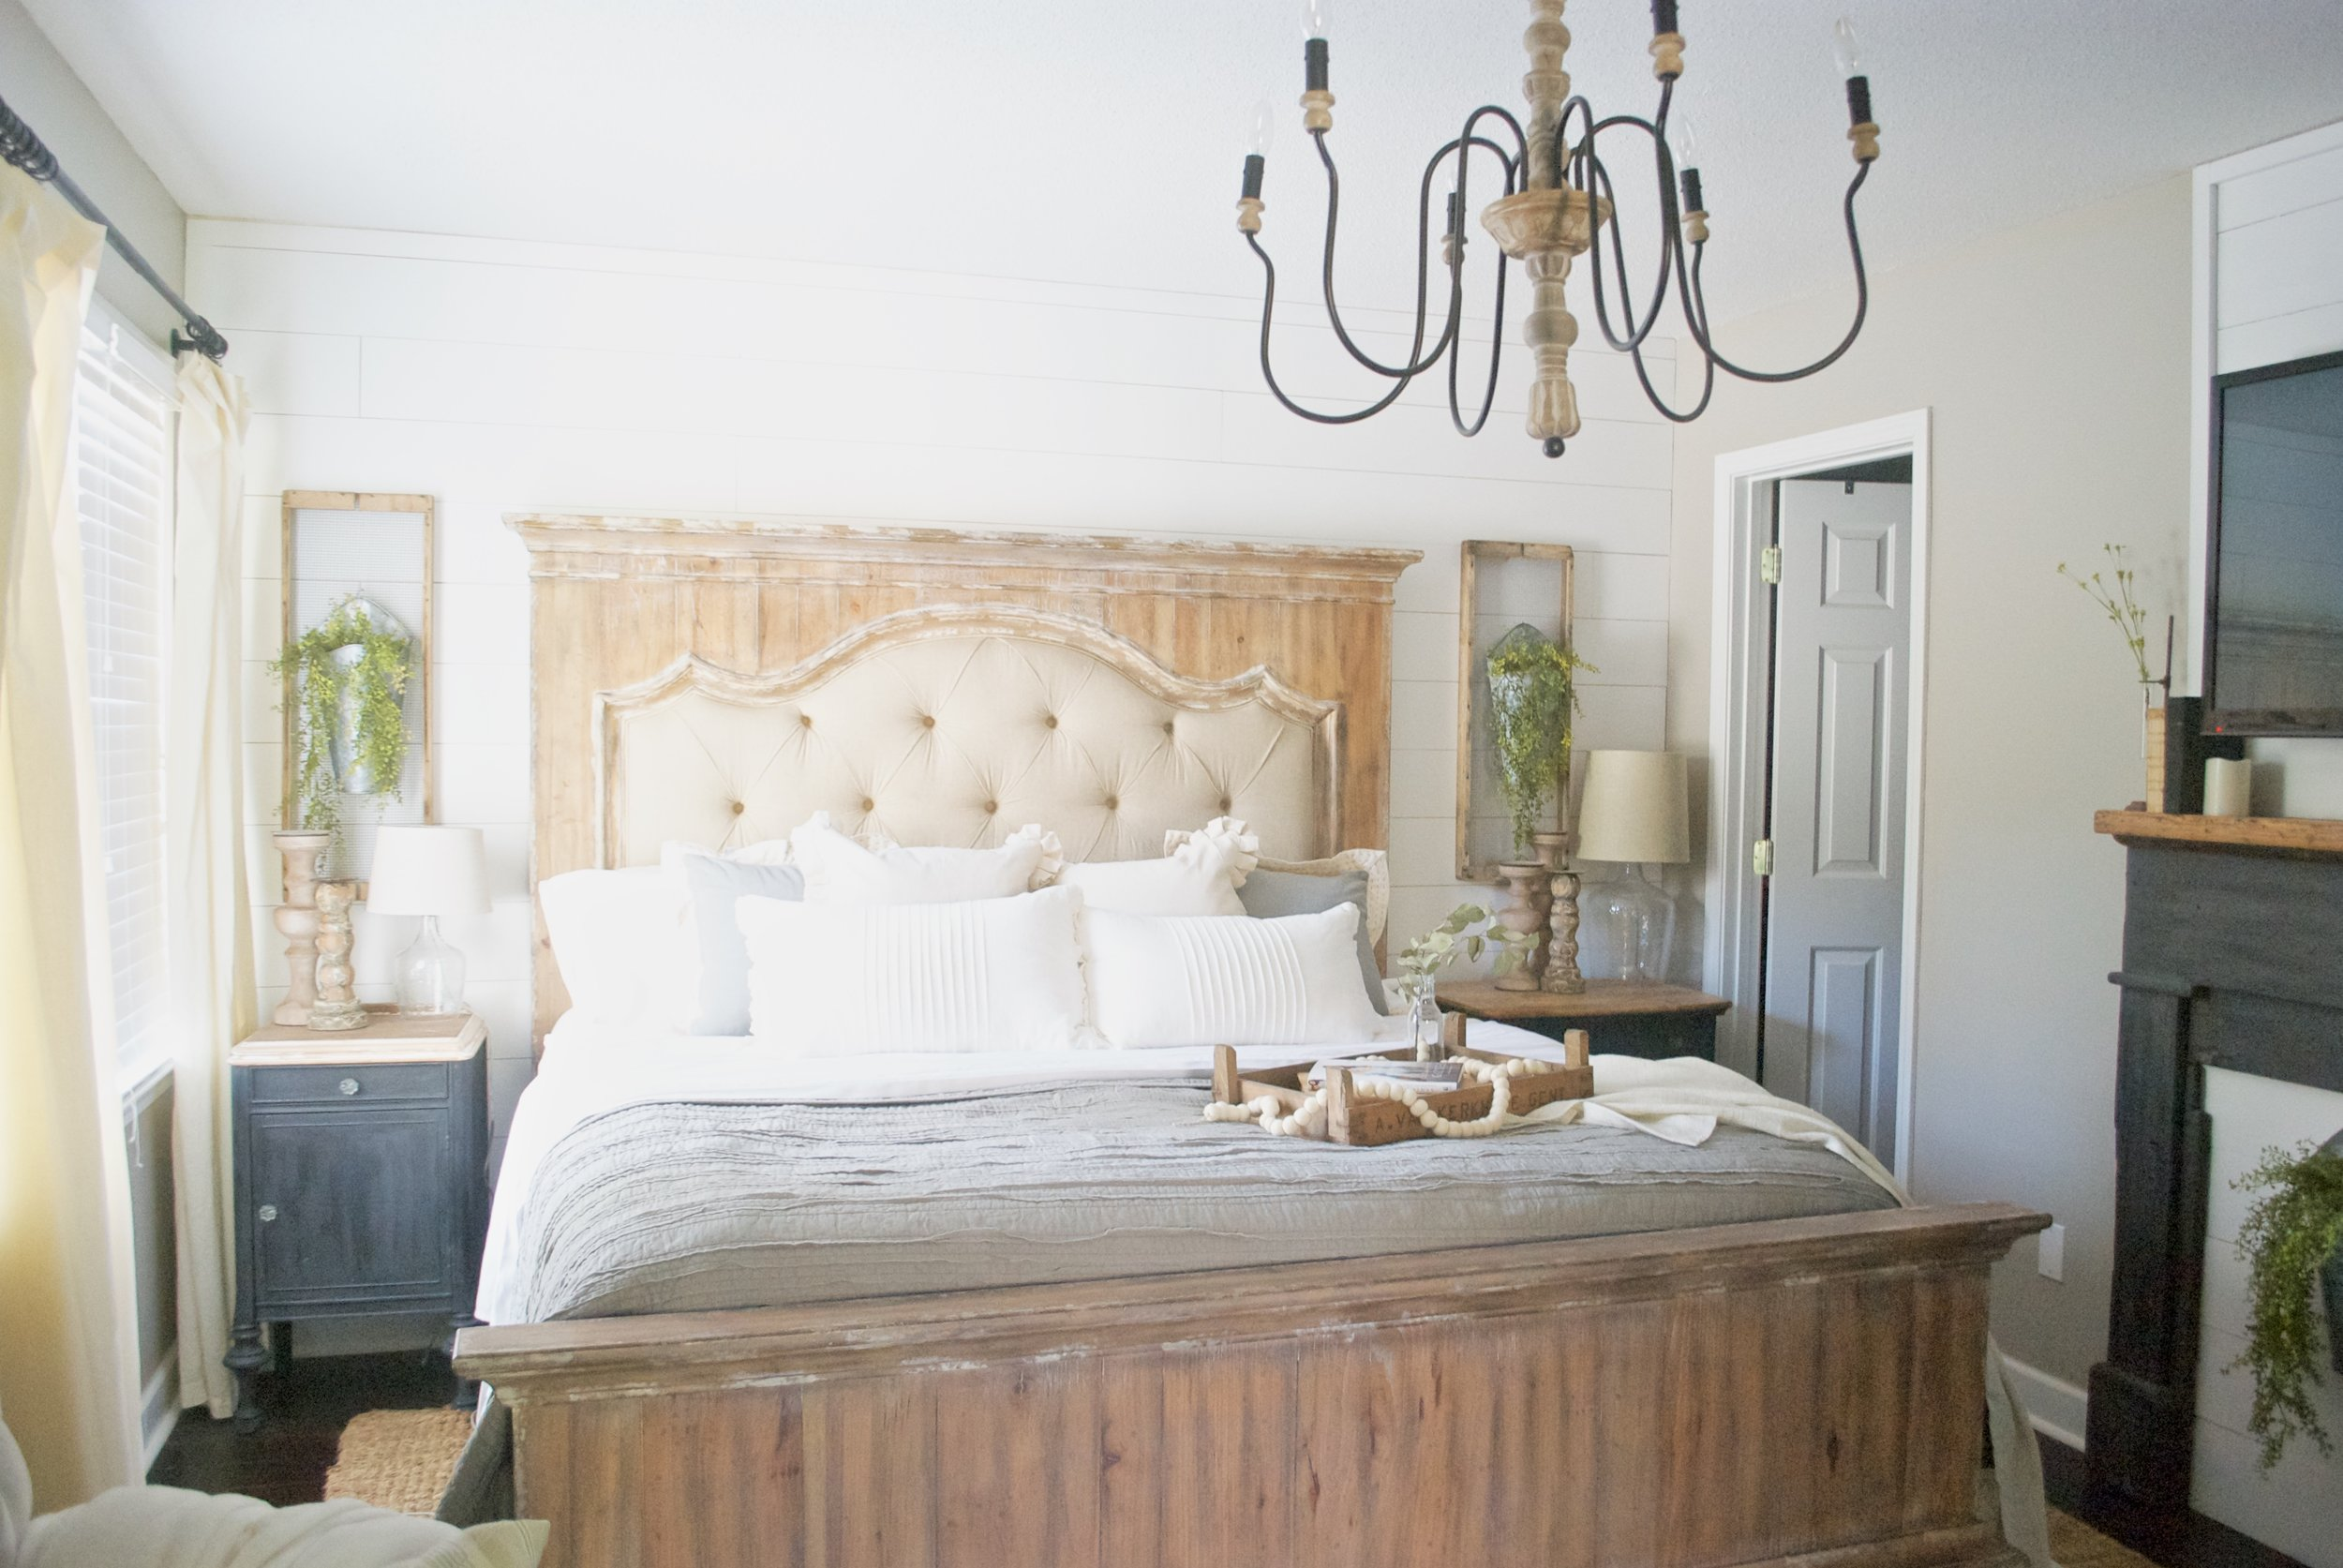 Plum Pretty Decor and Design Master Bedroom Tour- Farmhouse Inspired Bedroom, Shiplap Accent Wall, Tufted Linen Bed.